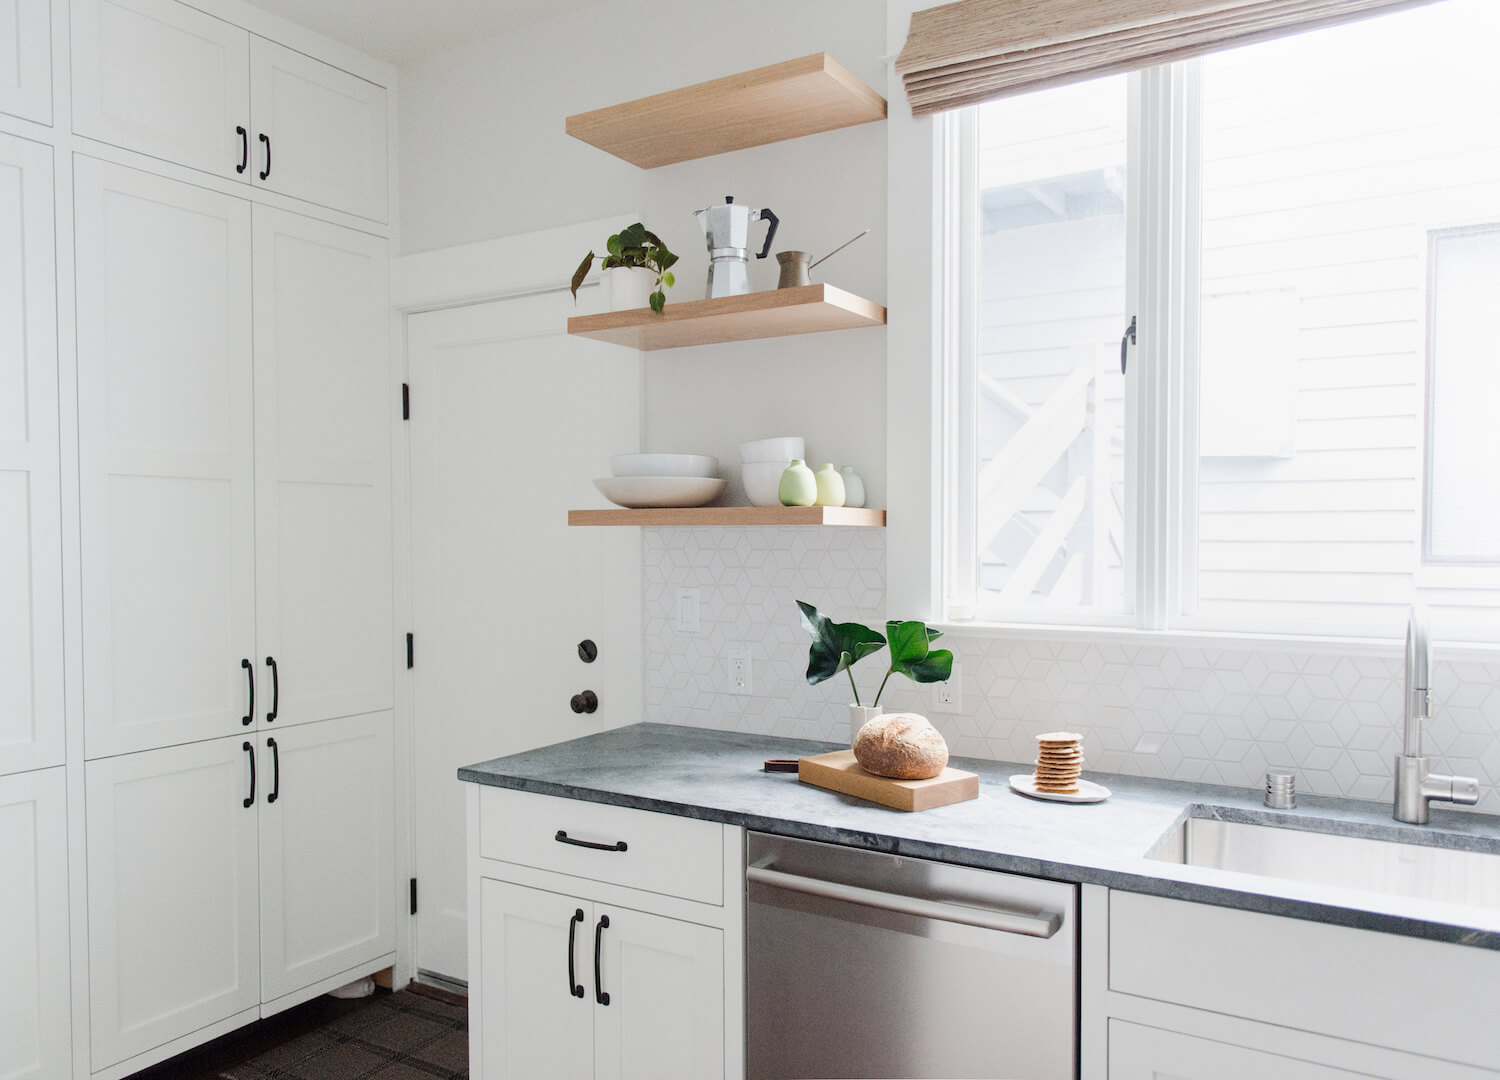 The Splashback Tiles For The White Kitchen: Why Are They Necessary